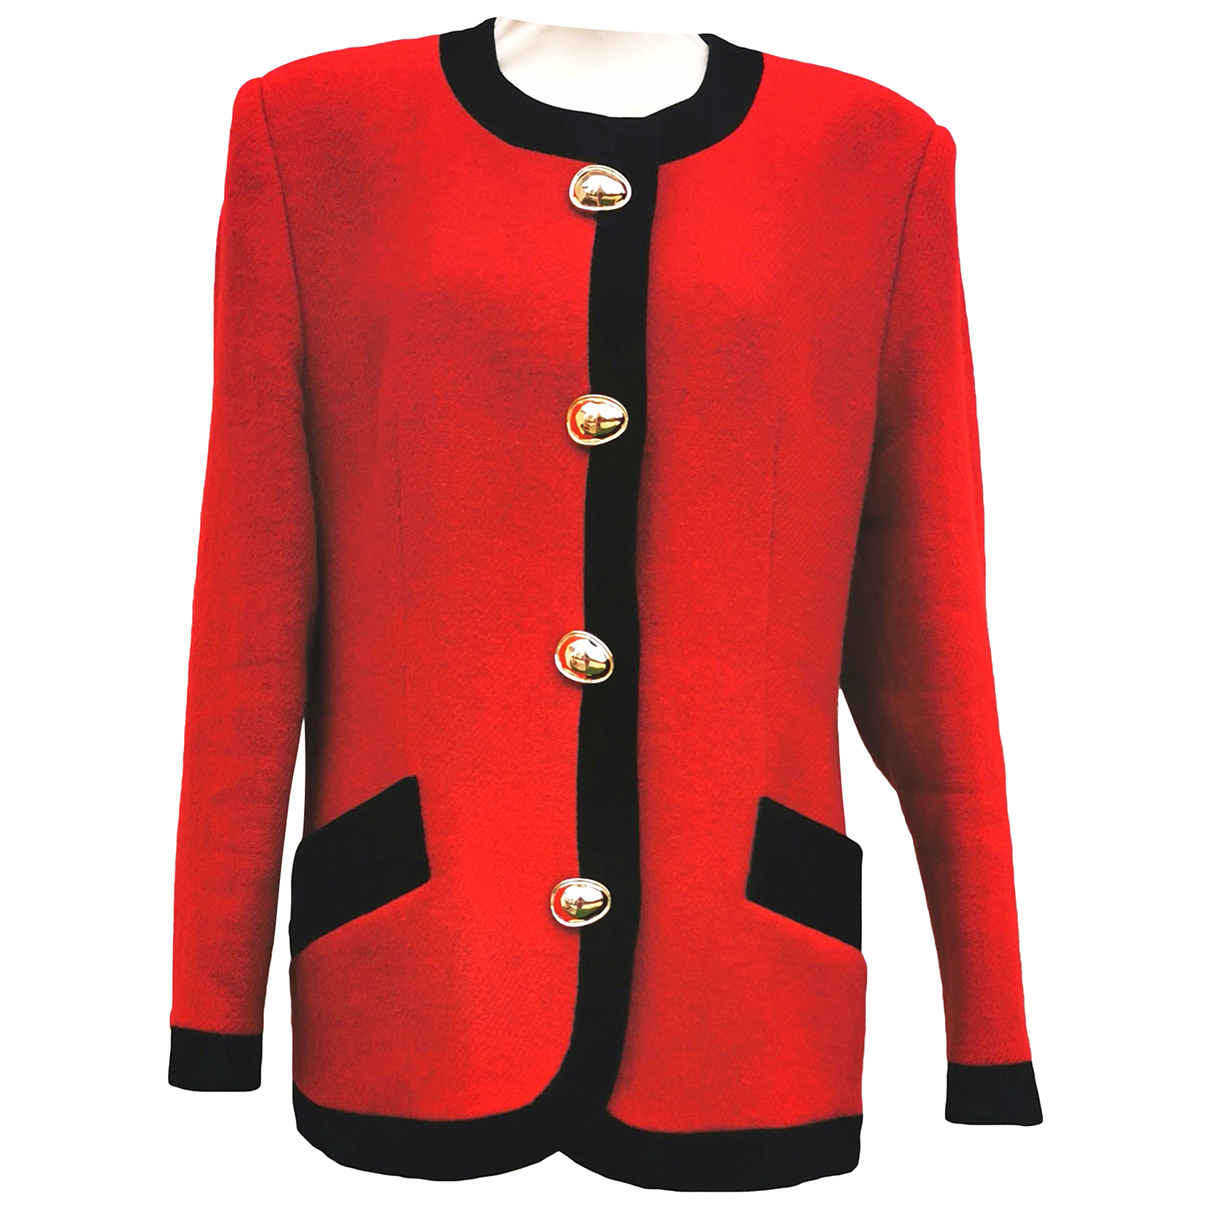 Givenchy N Red Wool jacket for Women 12 UK